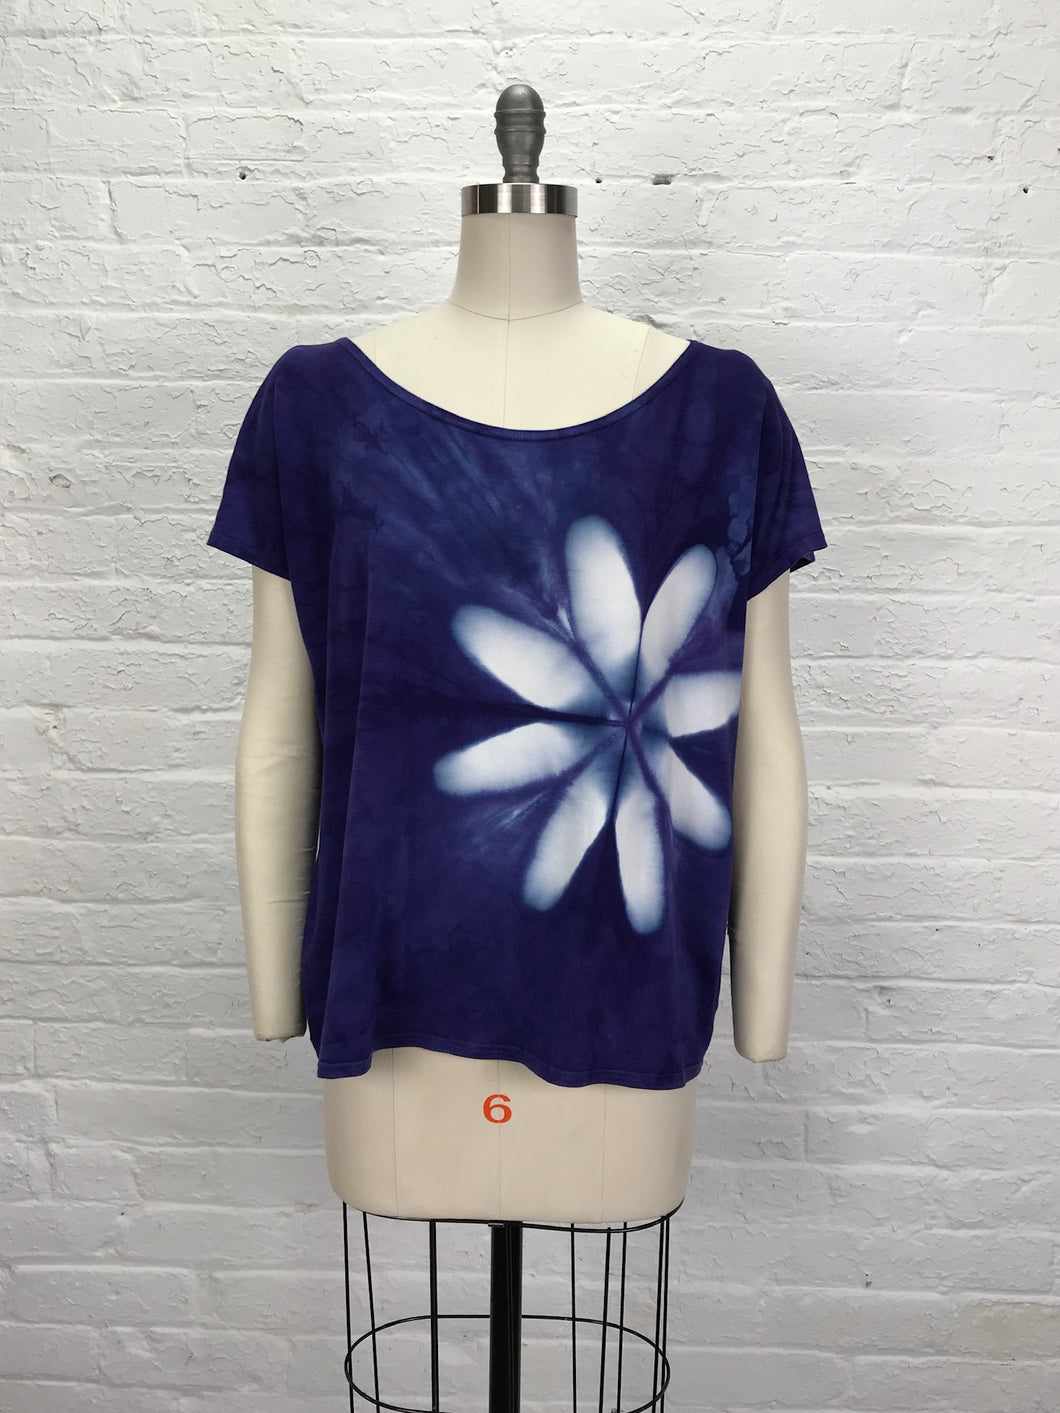 ELSIE TOP in Violet Flower